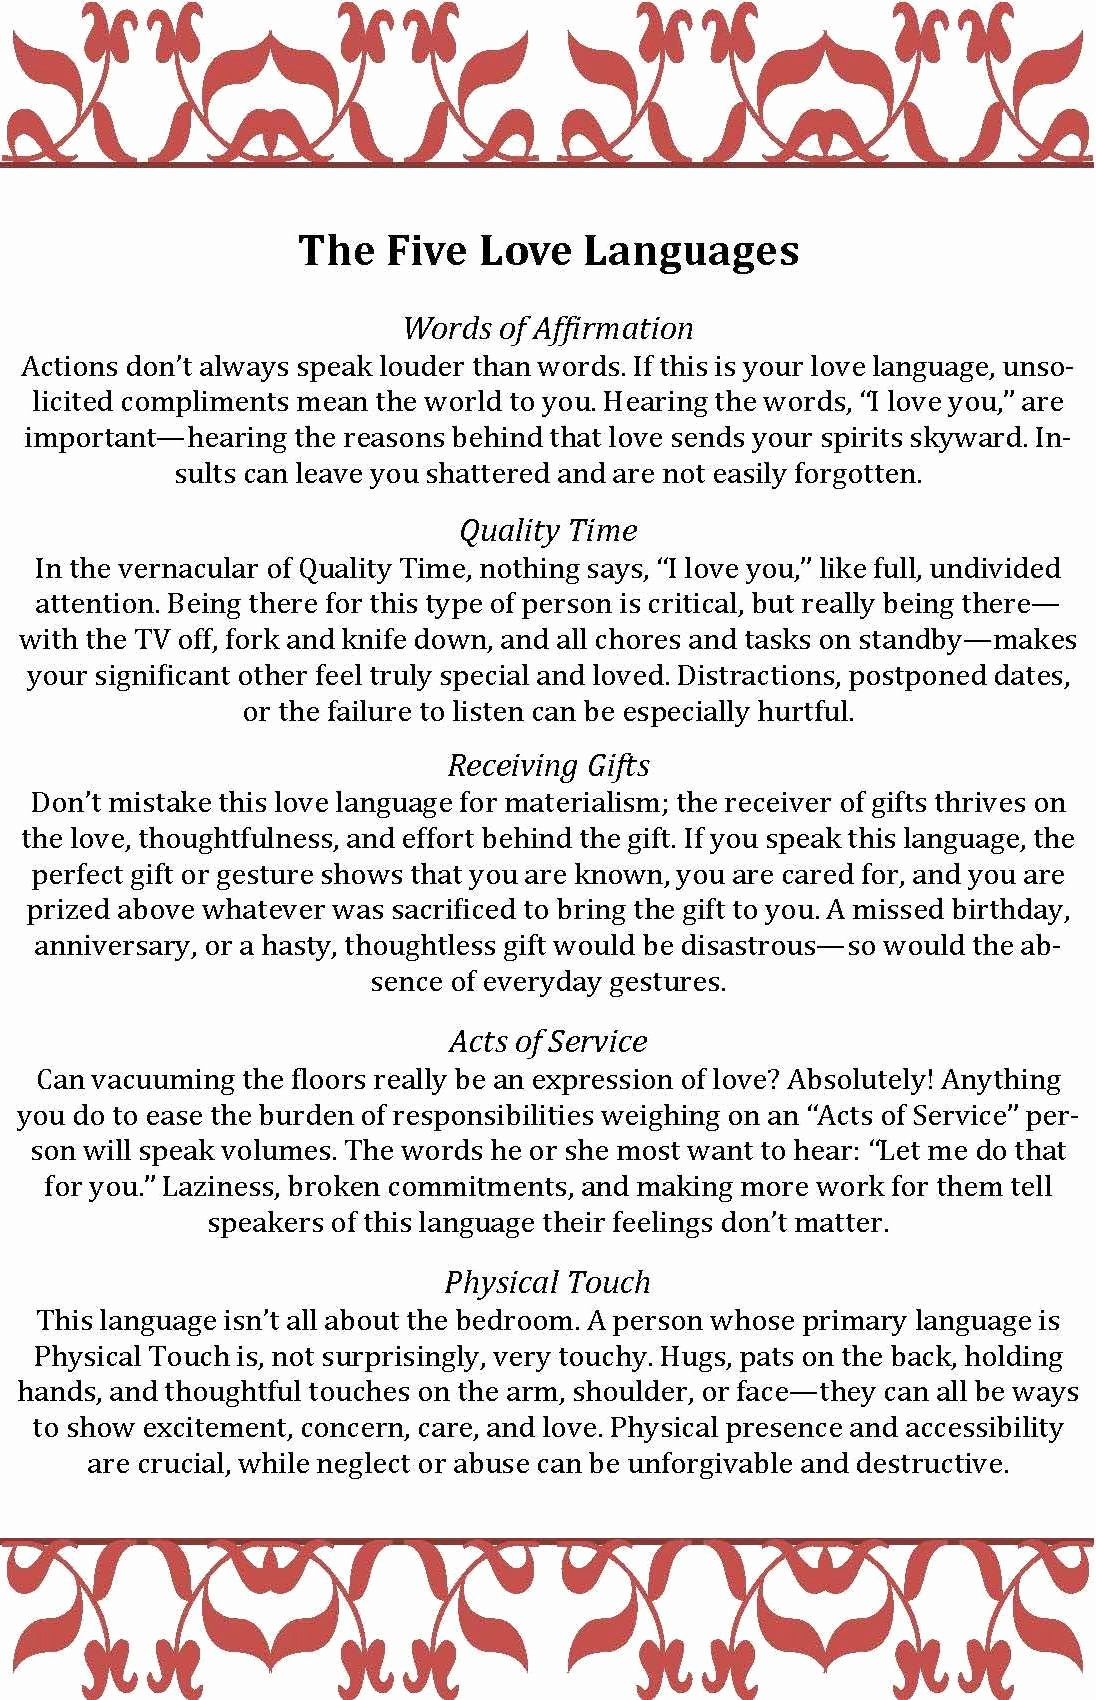 5 Love Languages Worksheet Elegant What S Your Love Language Take the Quiz the Five Love